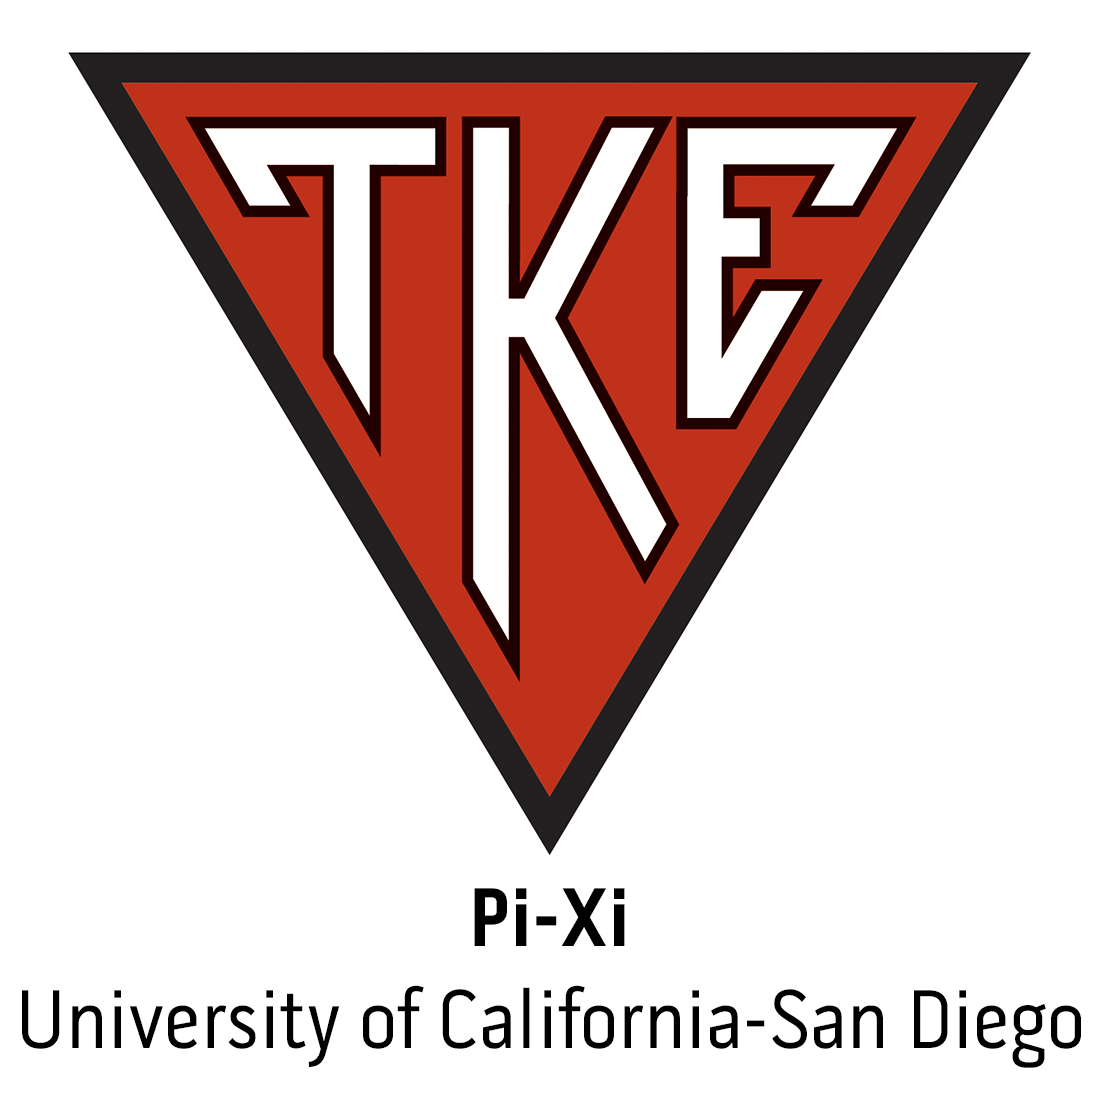 Pi-Xi Chapter at University of California, San Diego